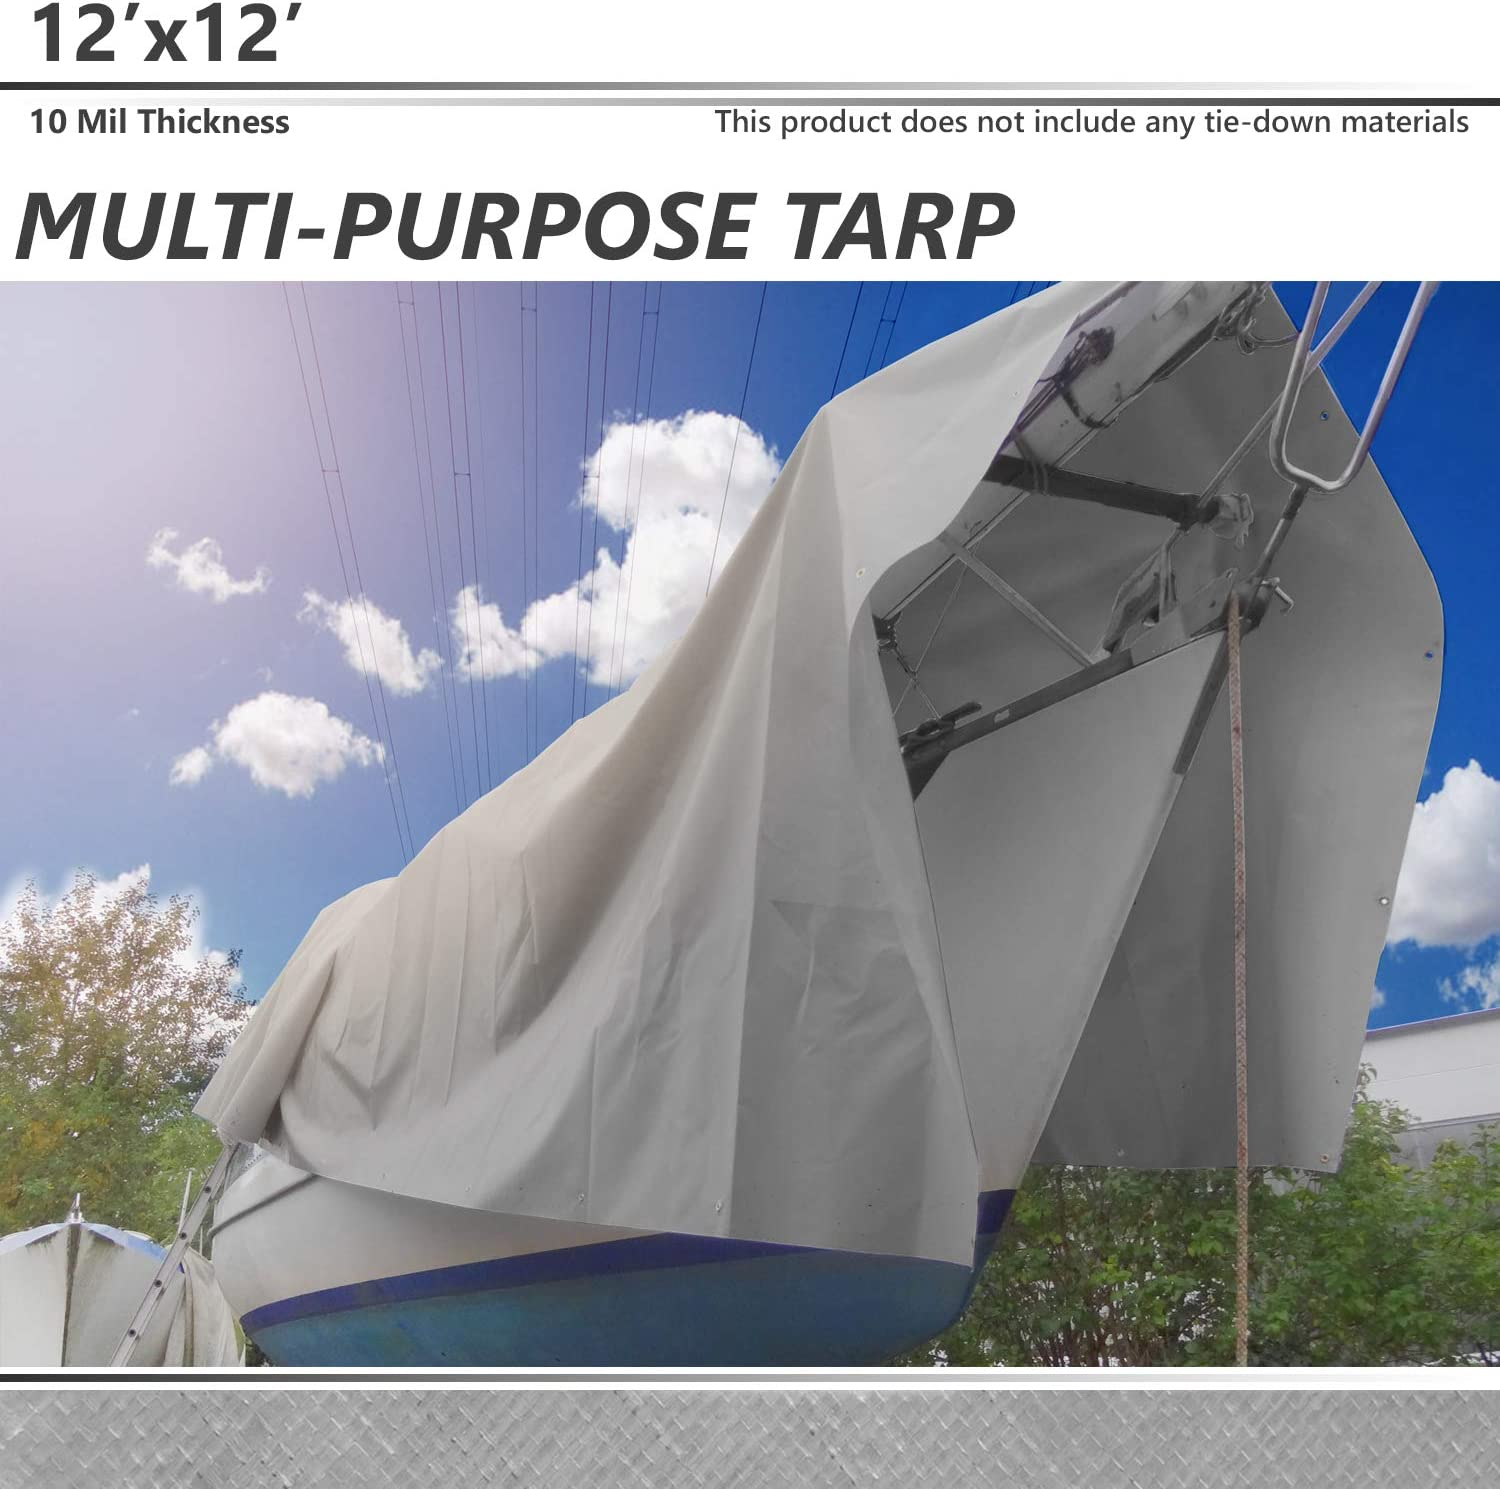 for Tarpaulin Canopy Tent White BOUYA 12 x 16 Tarp 10-mil Heavy Duty Thick Material UV Resistant Multi-Purpose Waterproof Reinforced Rip-Stop with Grommets Boat RV or Pool Cover